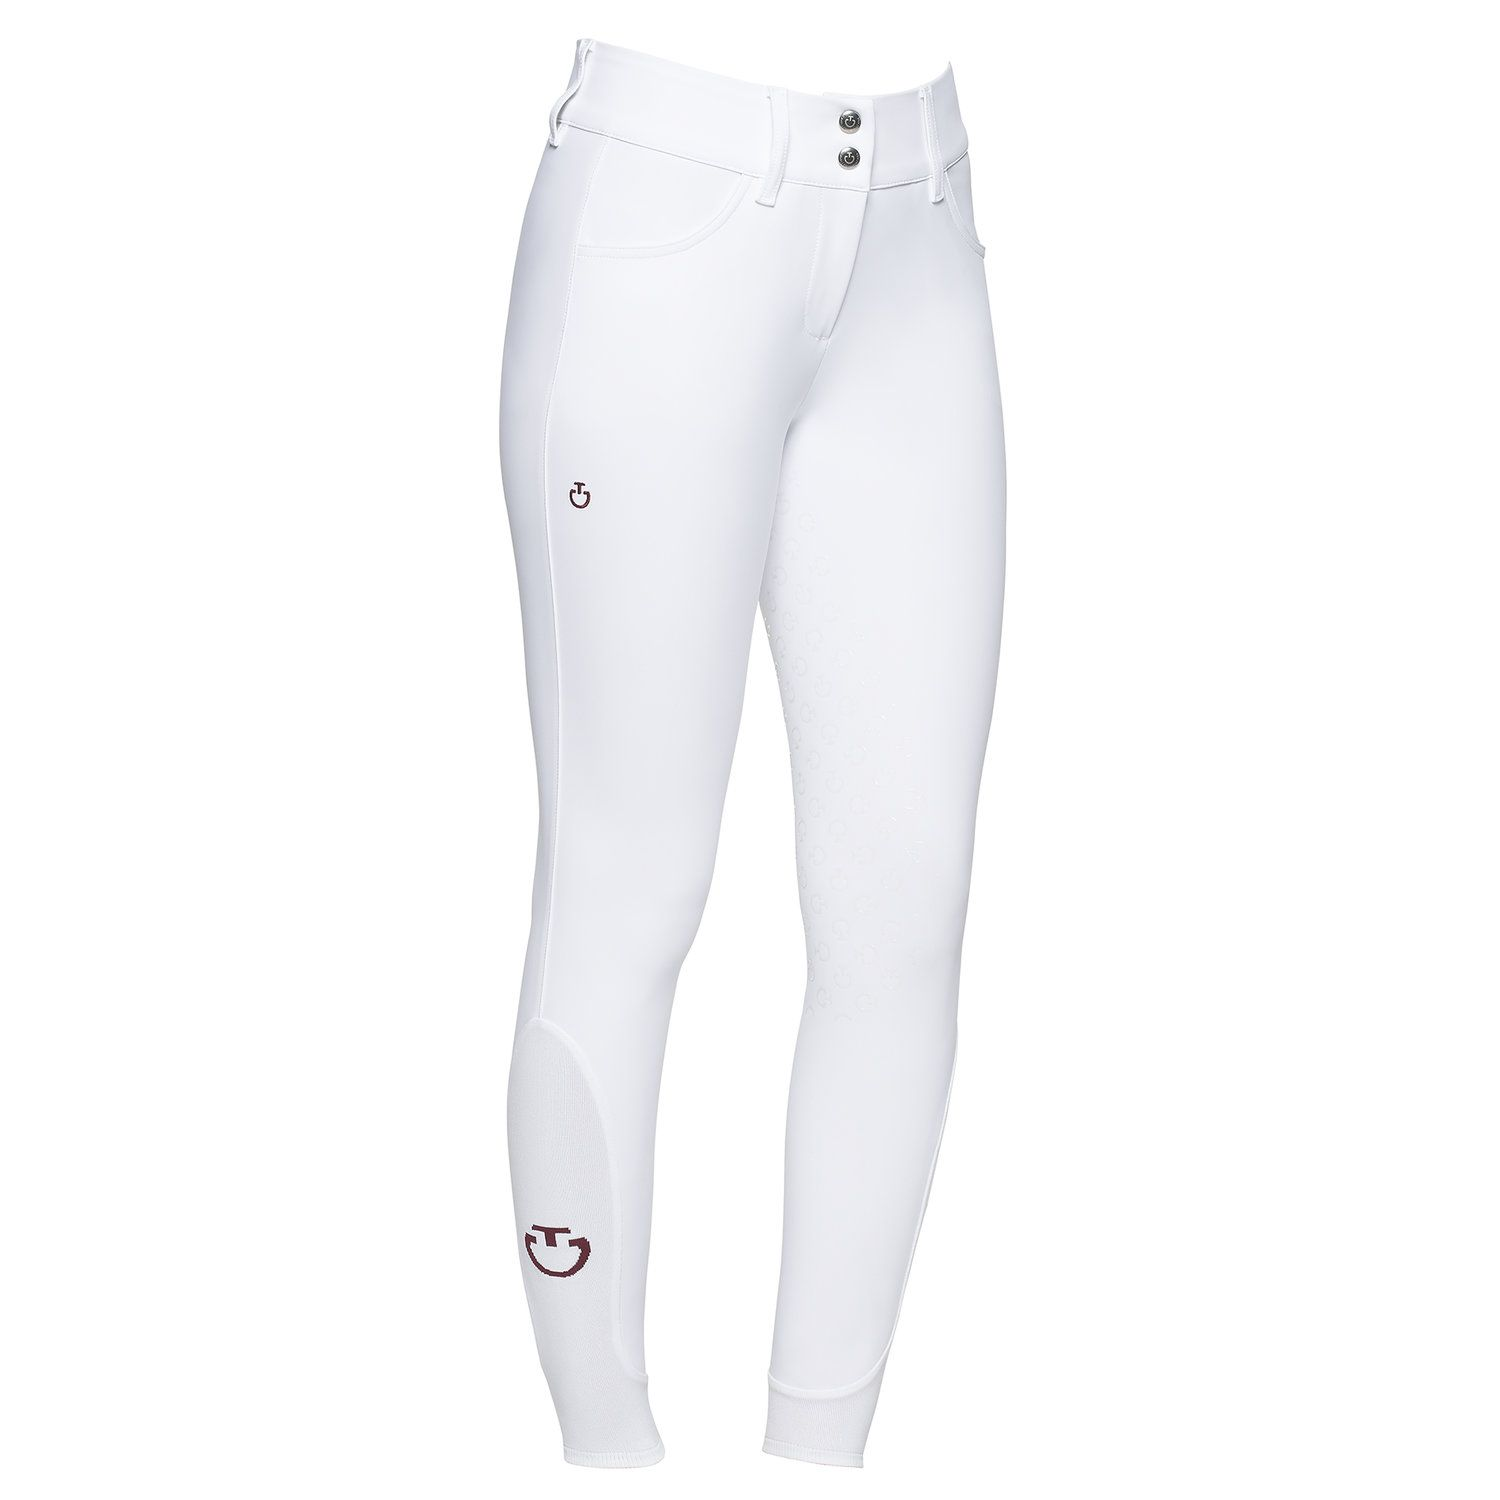 Women`s full grip dressage breeches